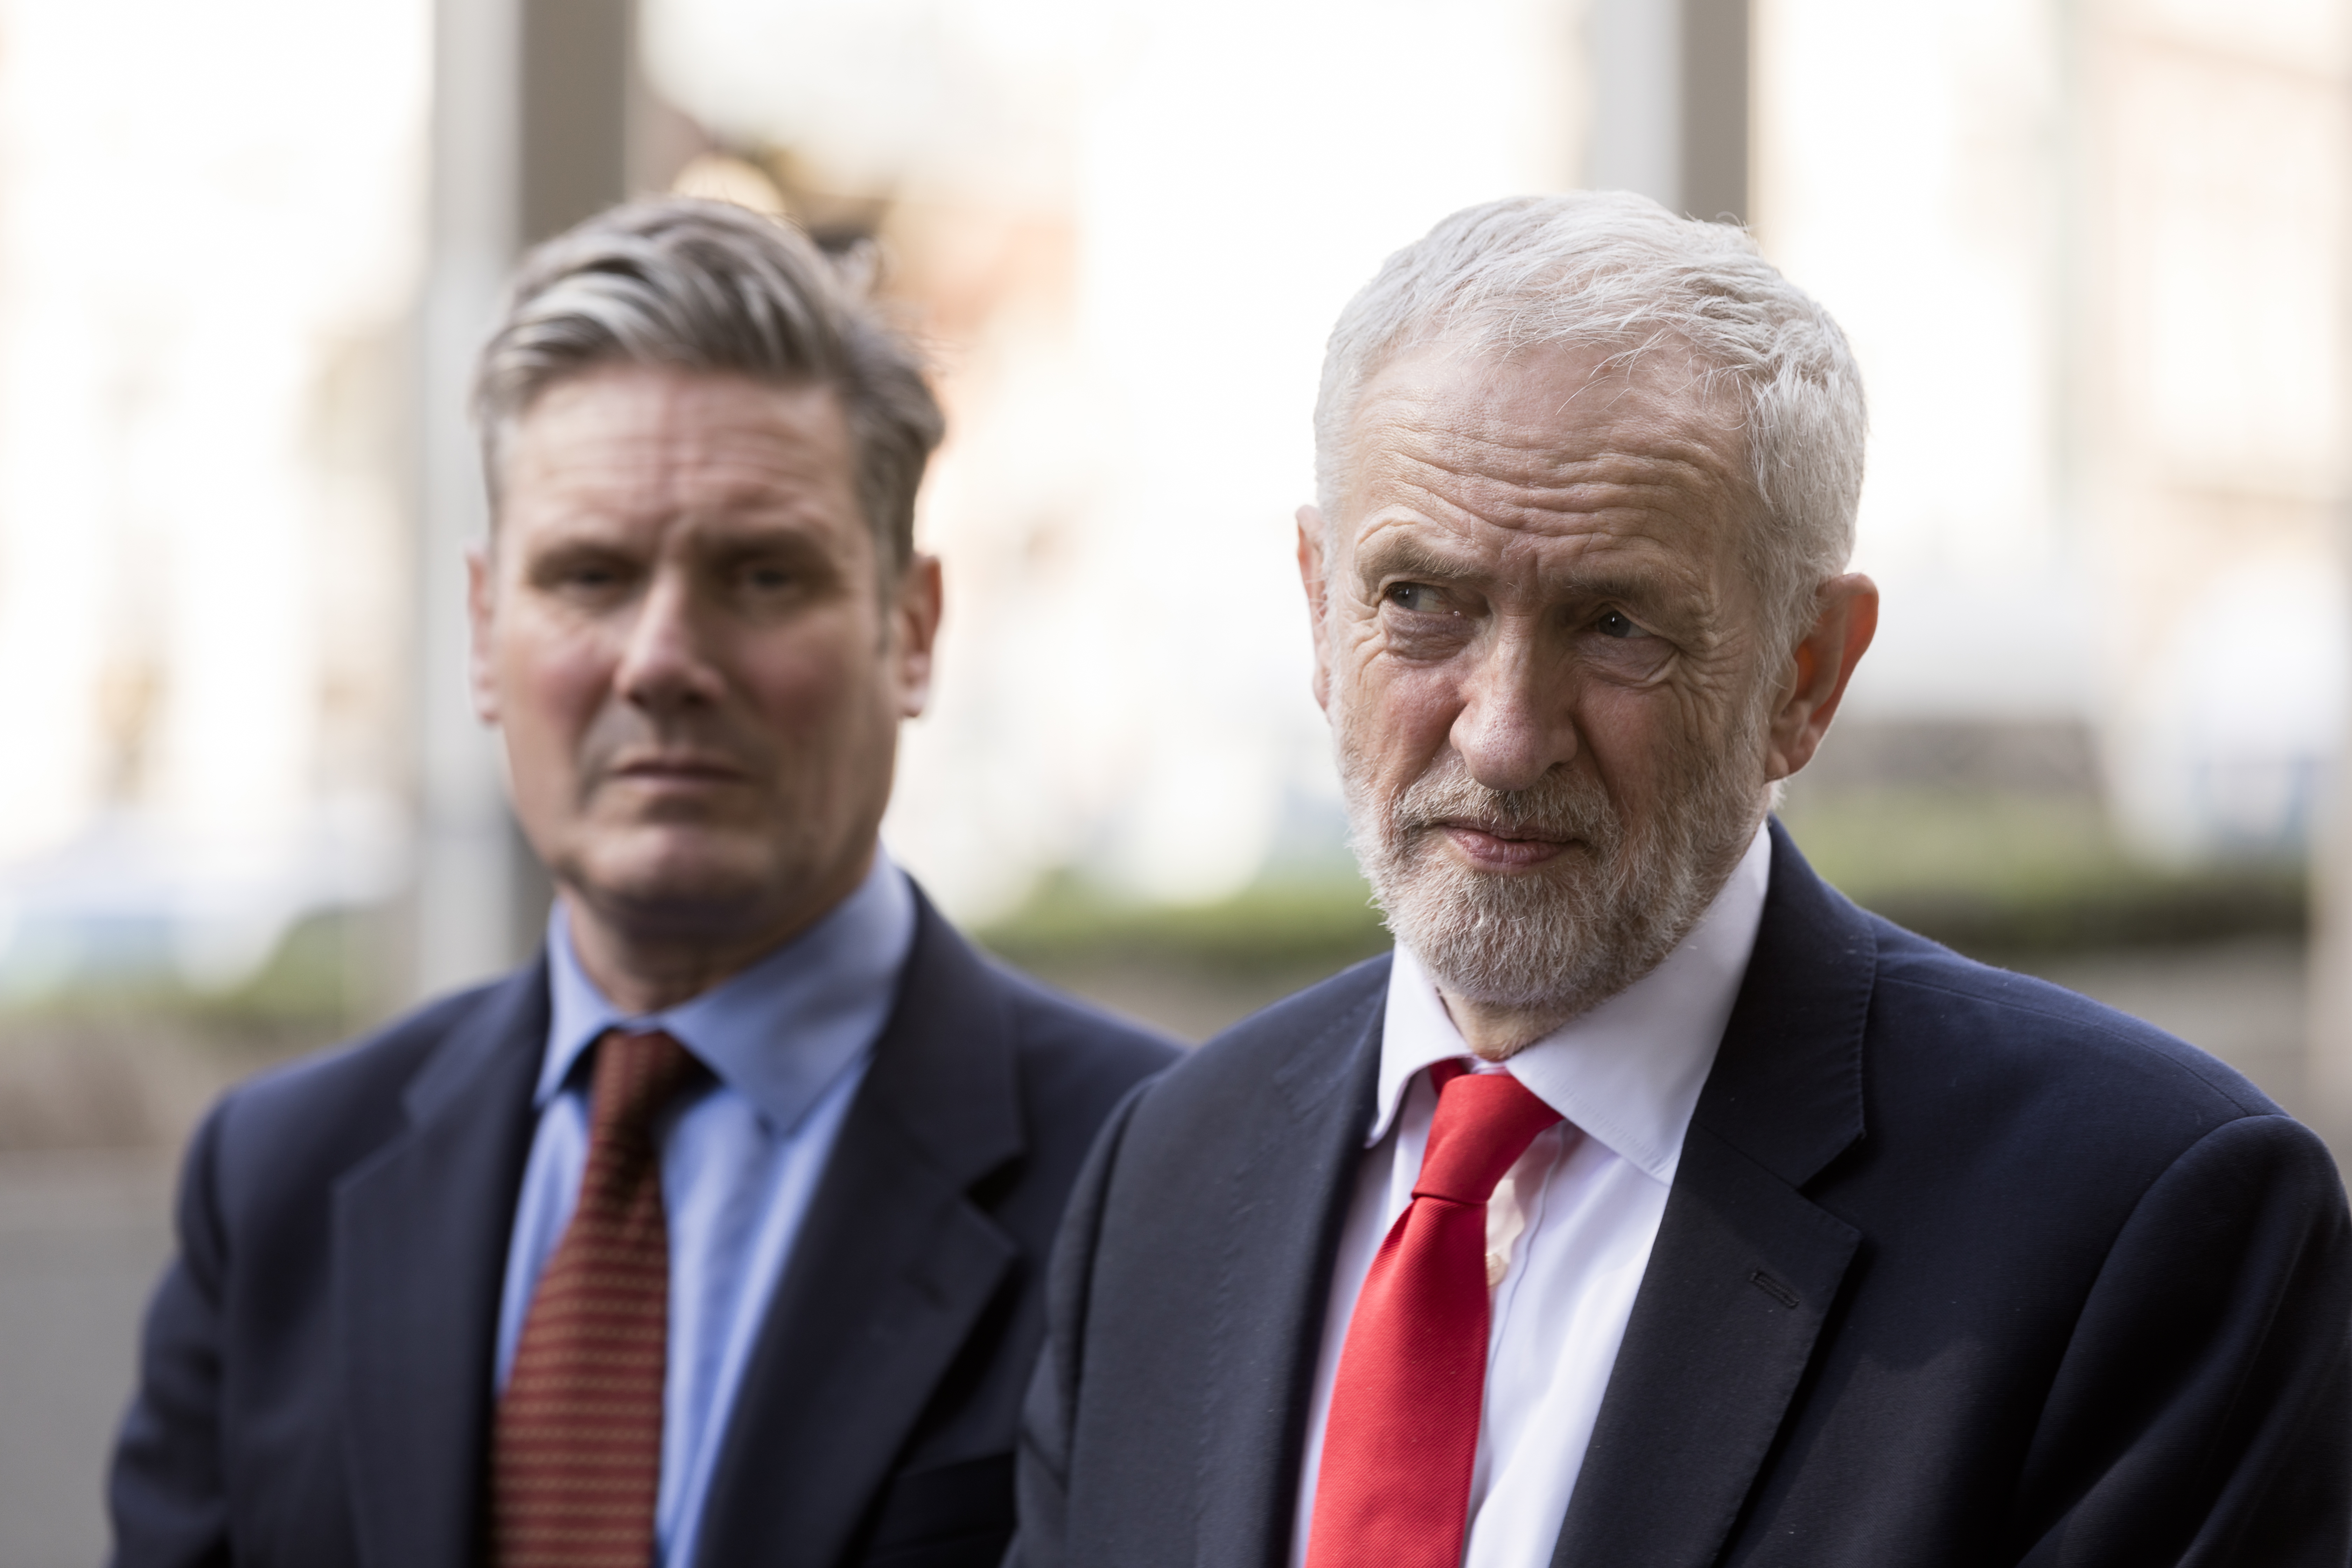 Labour's shadow Brexit secretary, Keir Starmer, and leader Jeremy Corbyn.